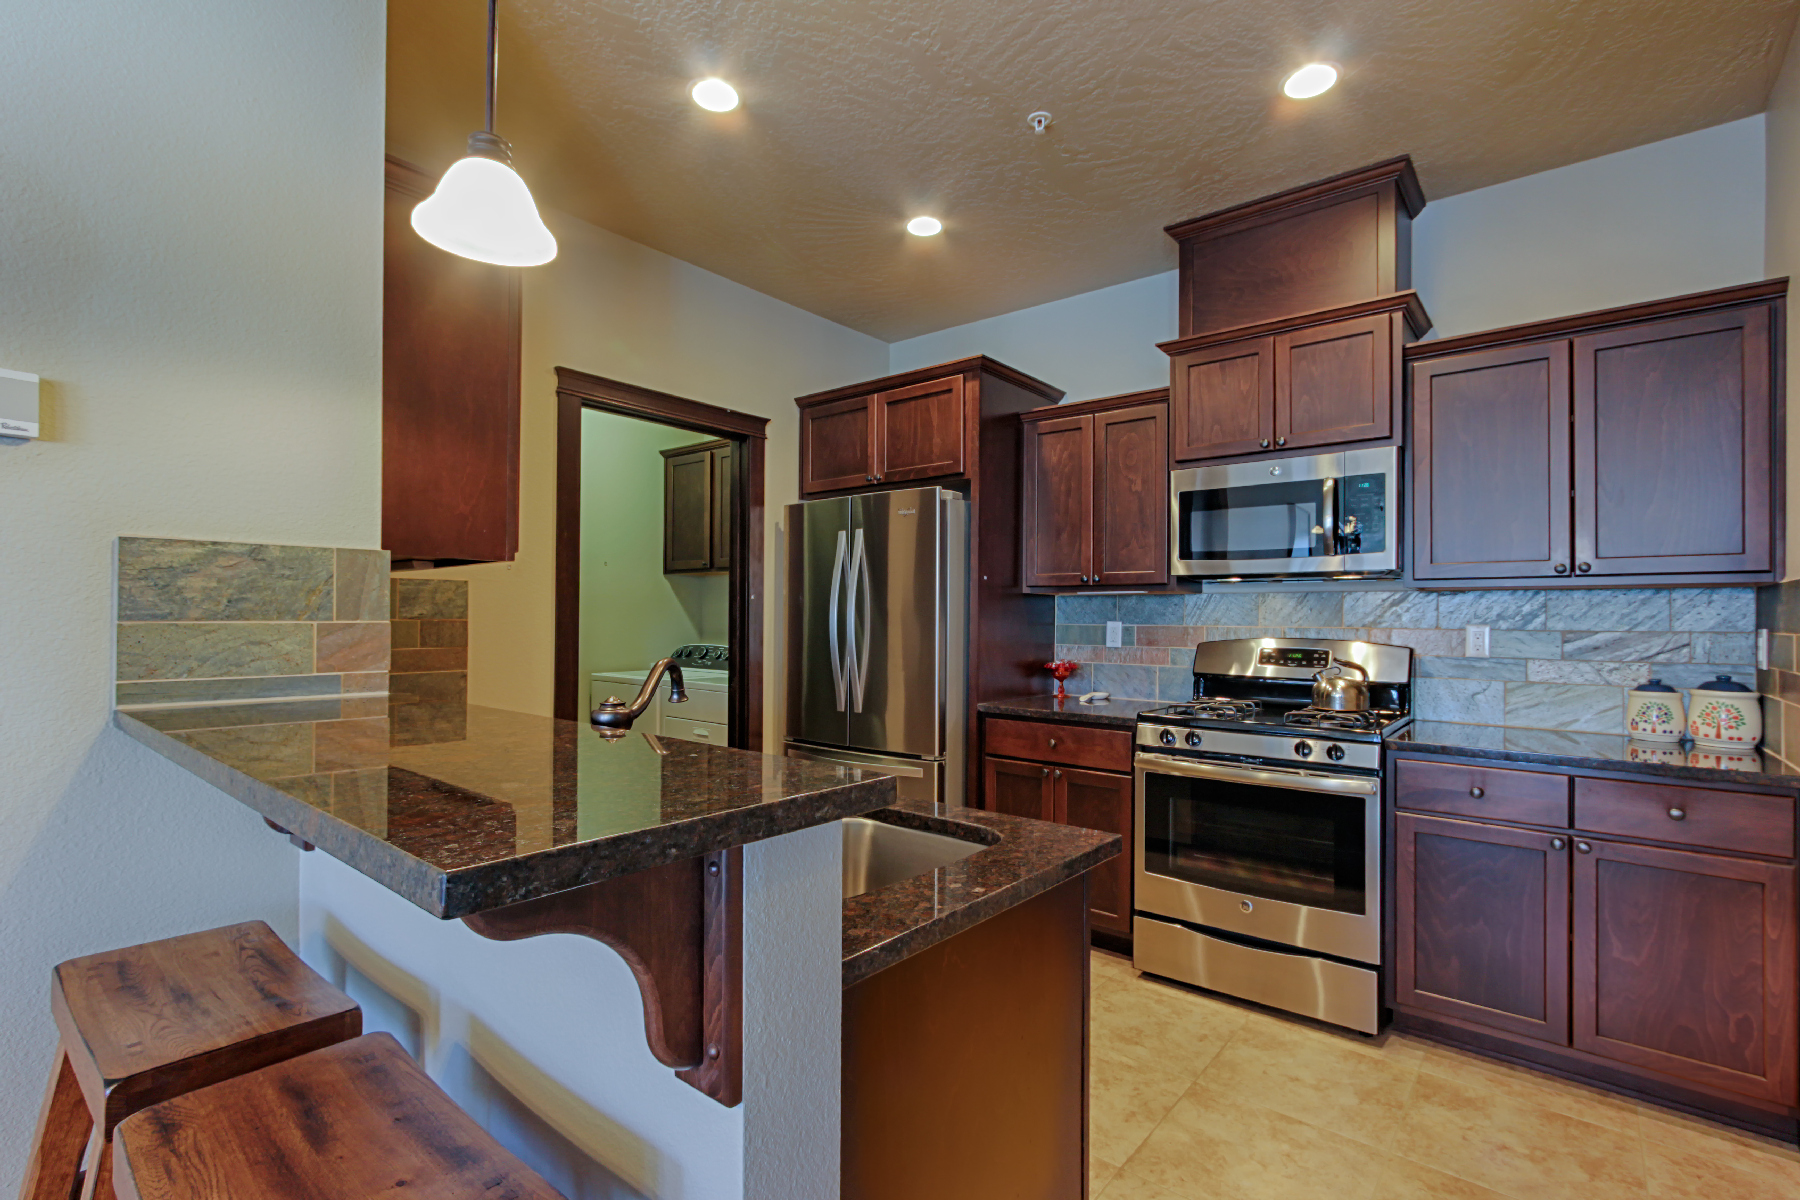 Single Family Home for Sale at The Condos at Mill River 4577 W Greenchain Loop #4 Coeur D Alene, Idaho, 83814 United States